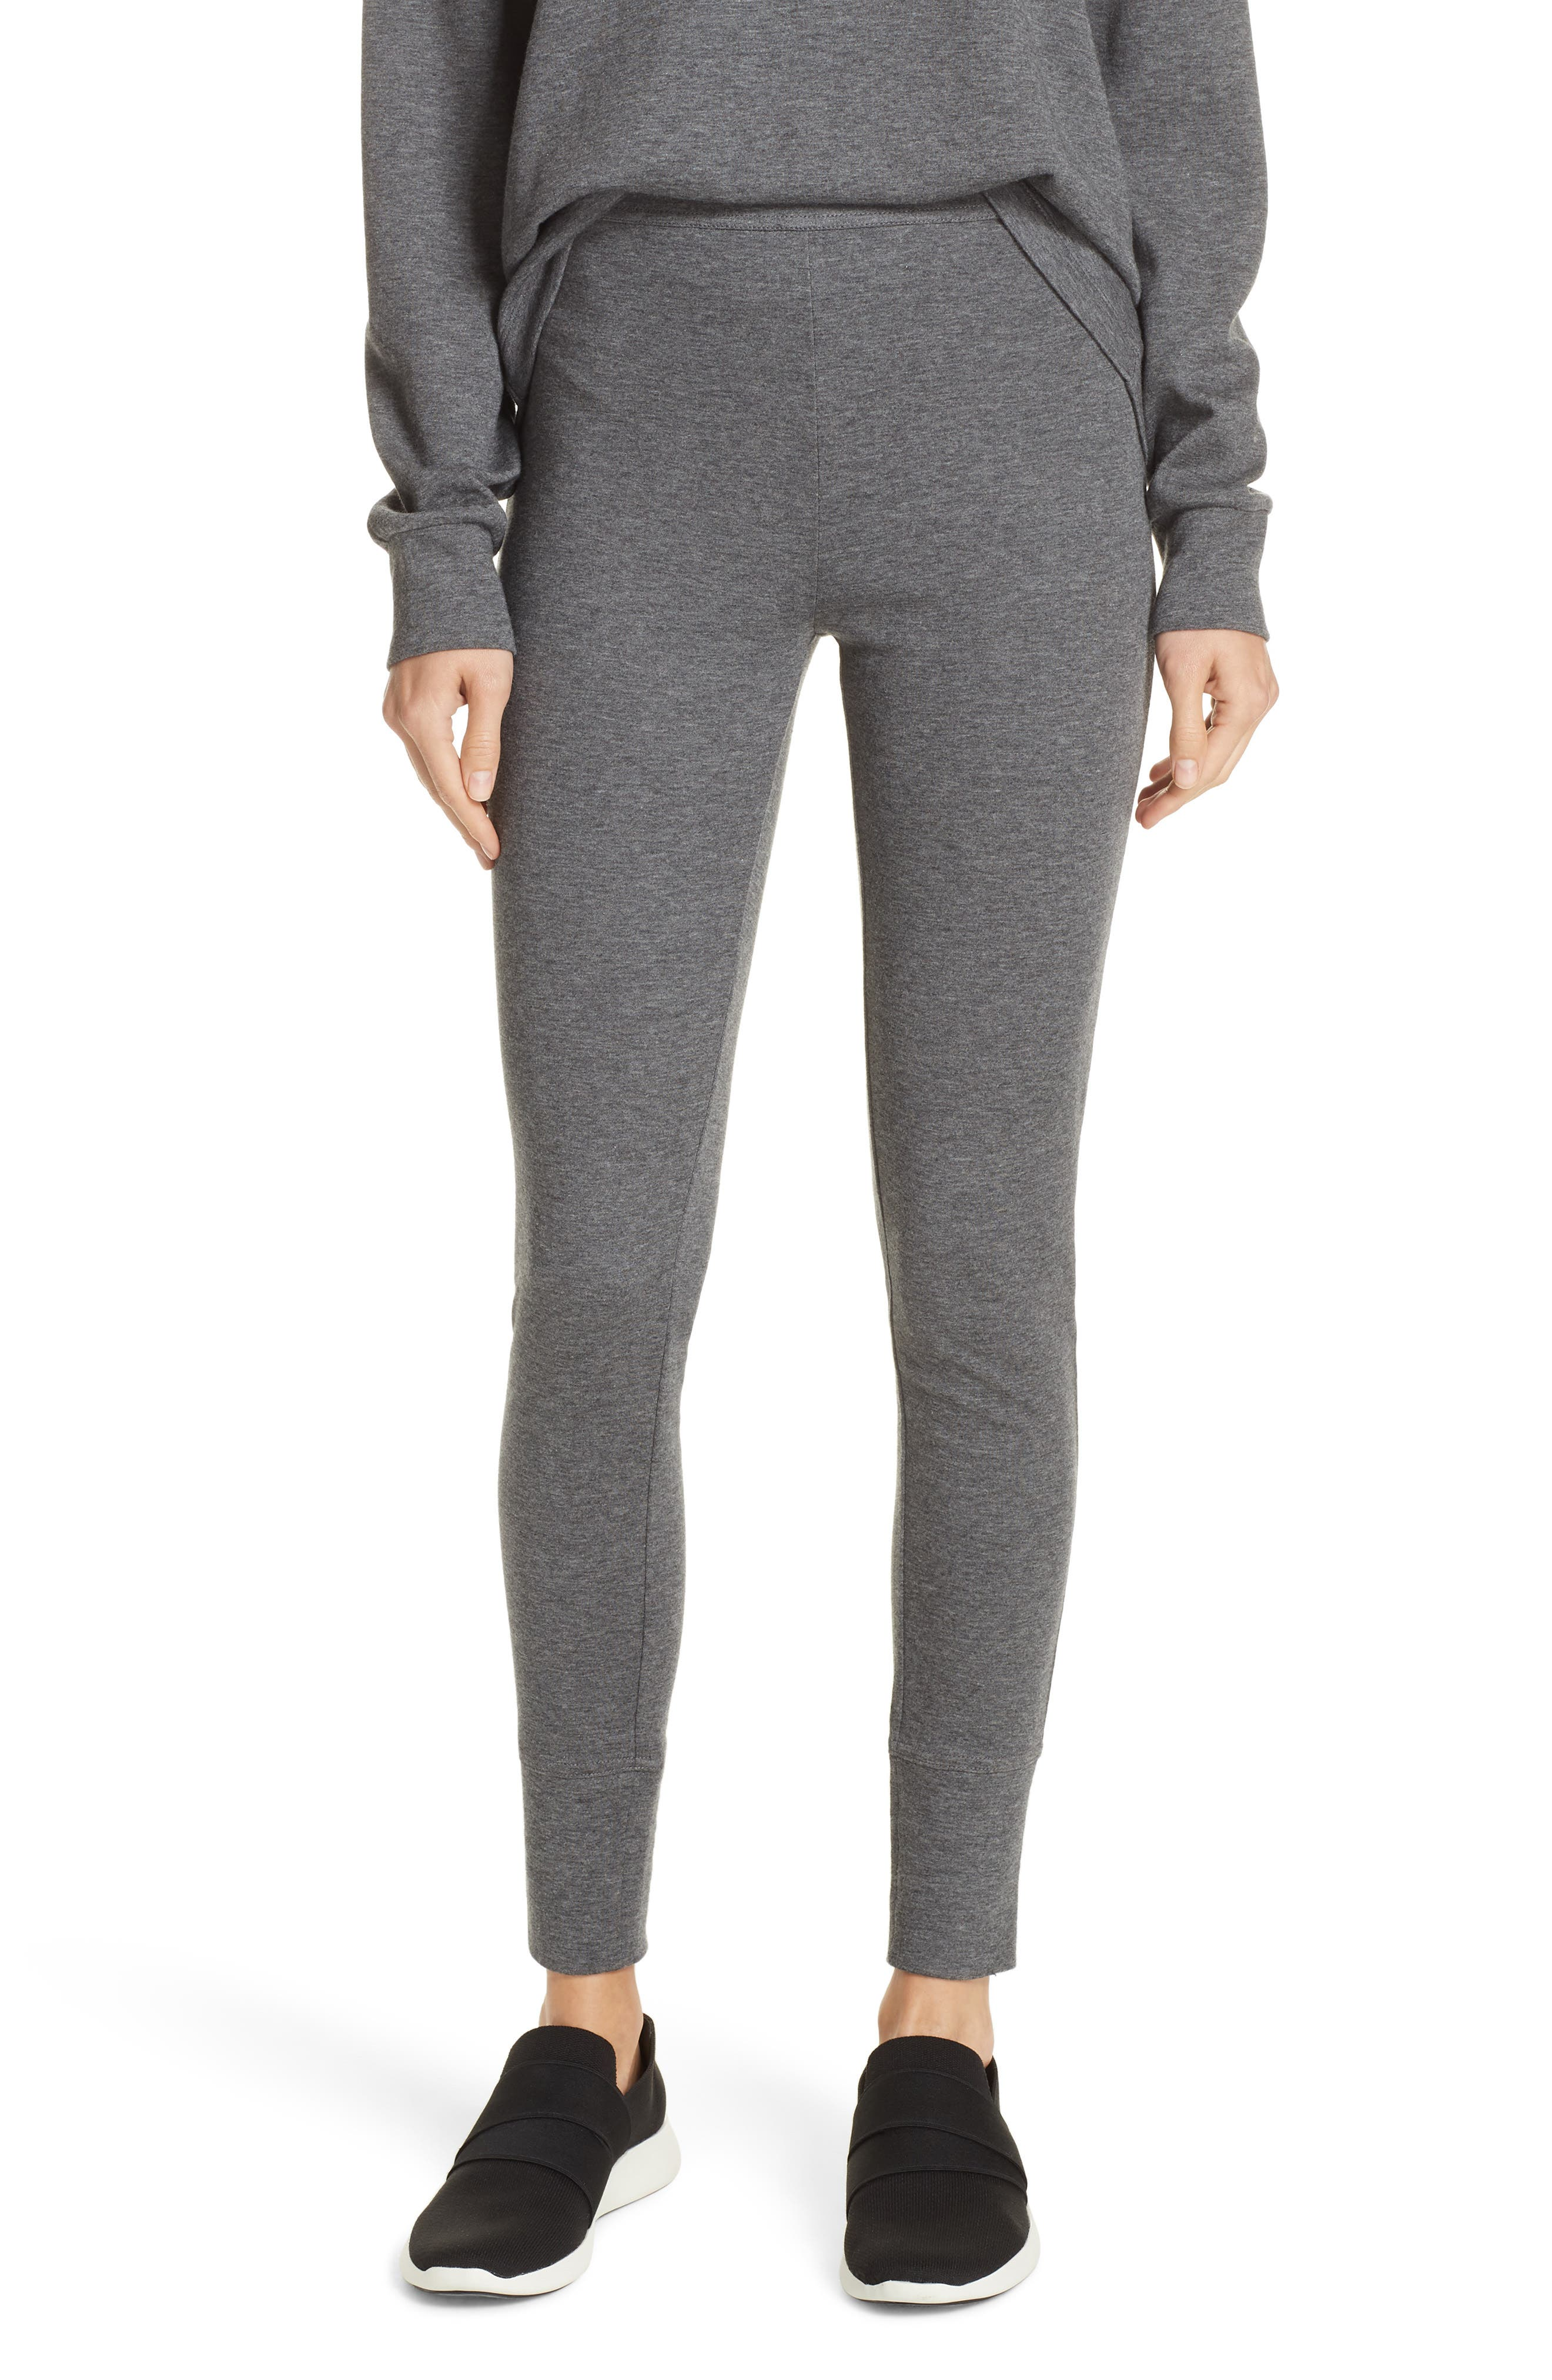 Heathered Cotton Blend Leggings,                         Main,                         color, HEATHER CHARCOAL